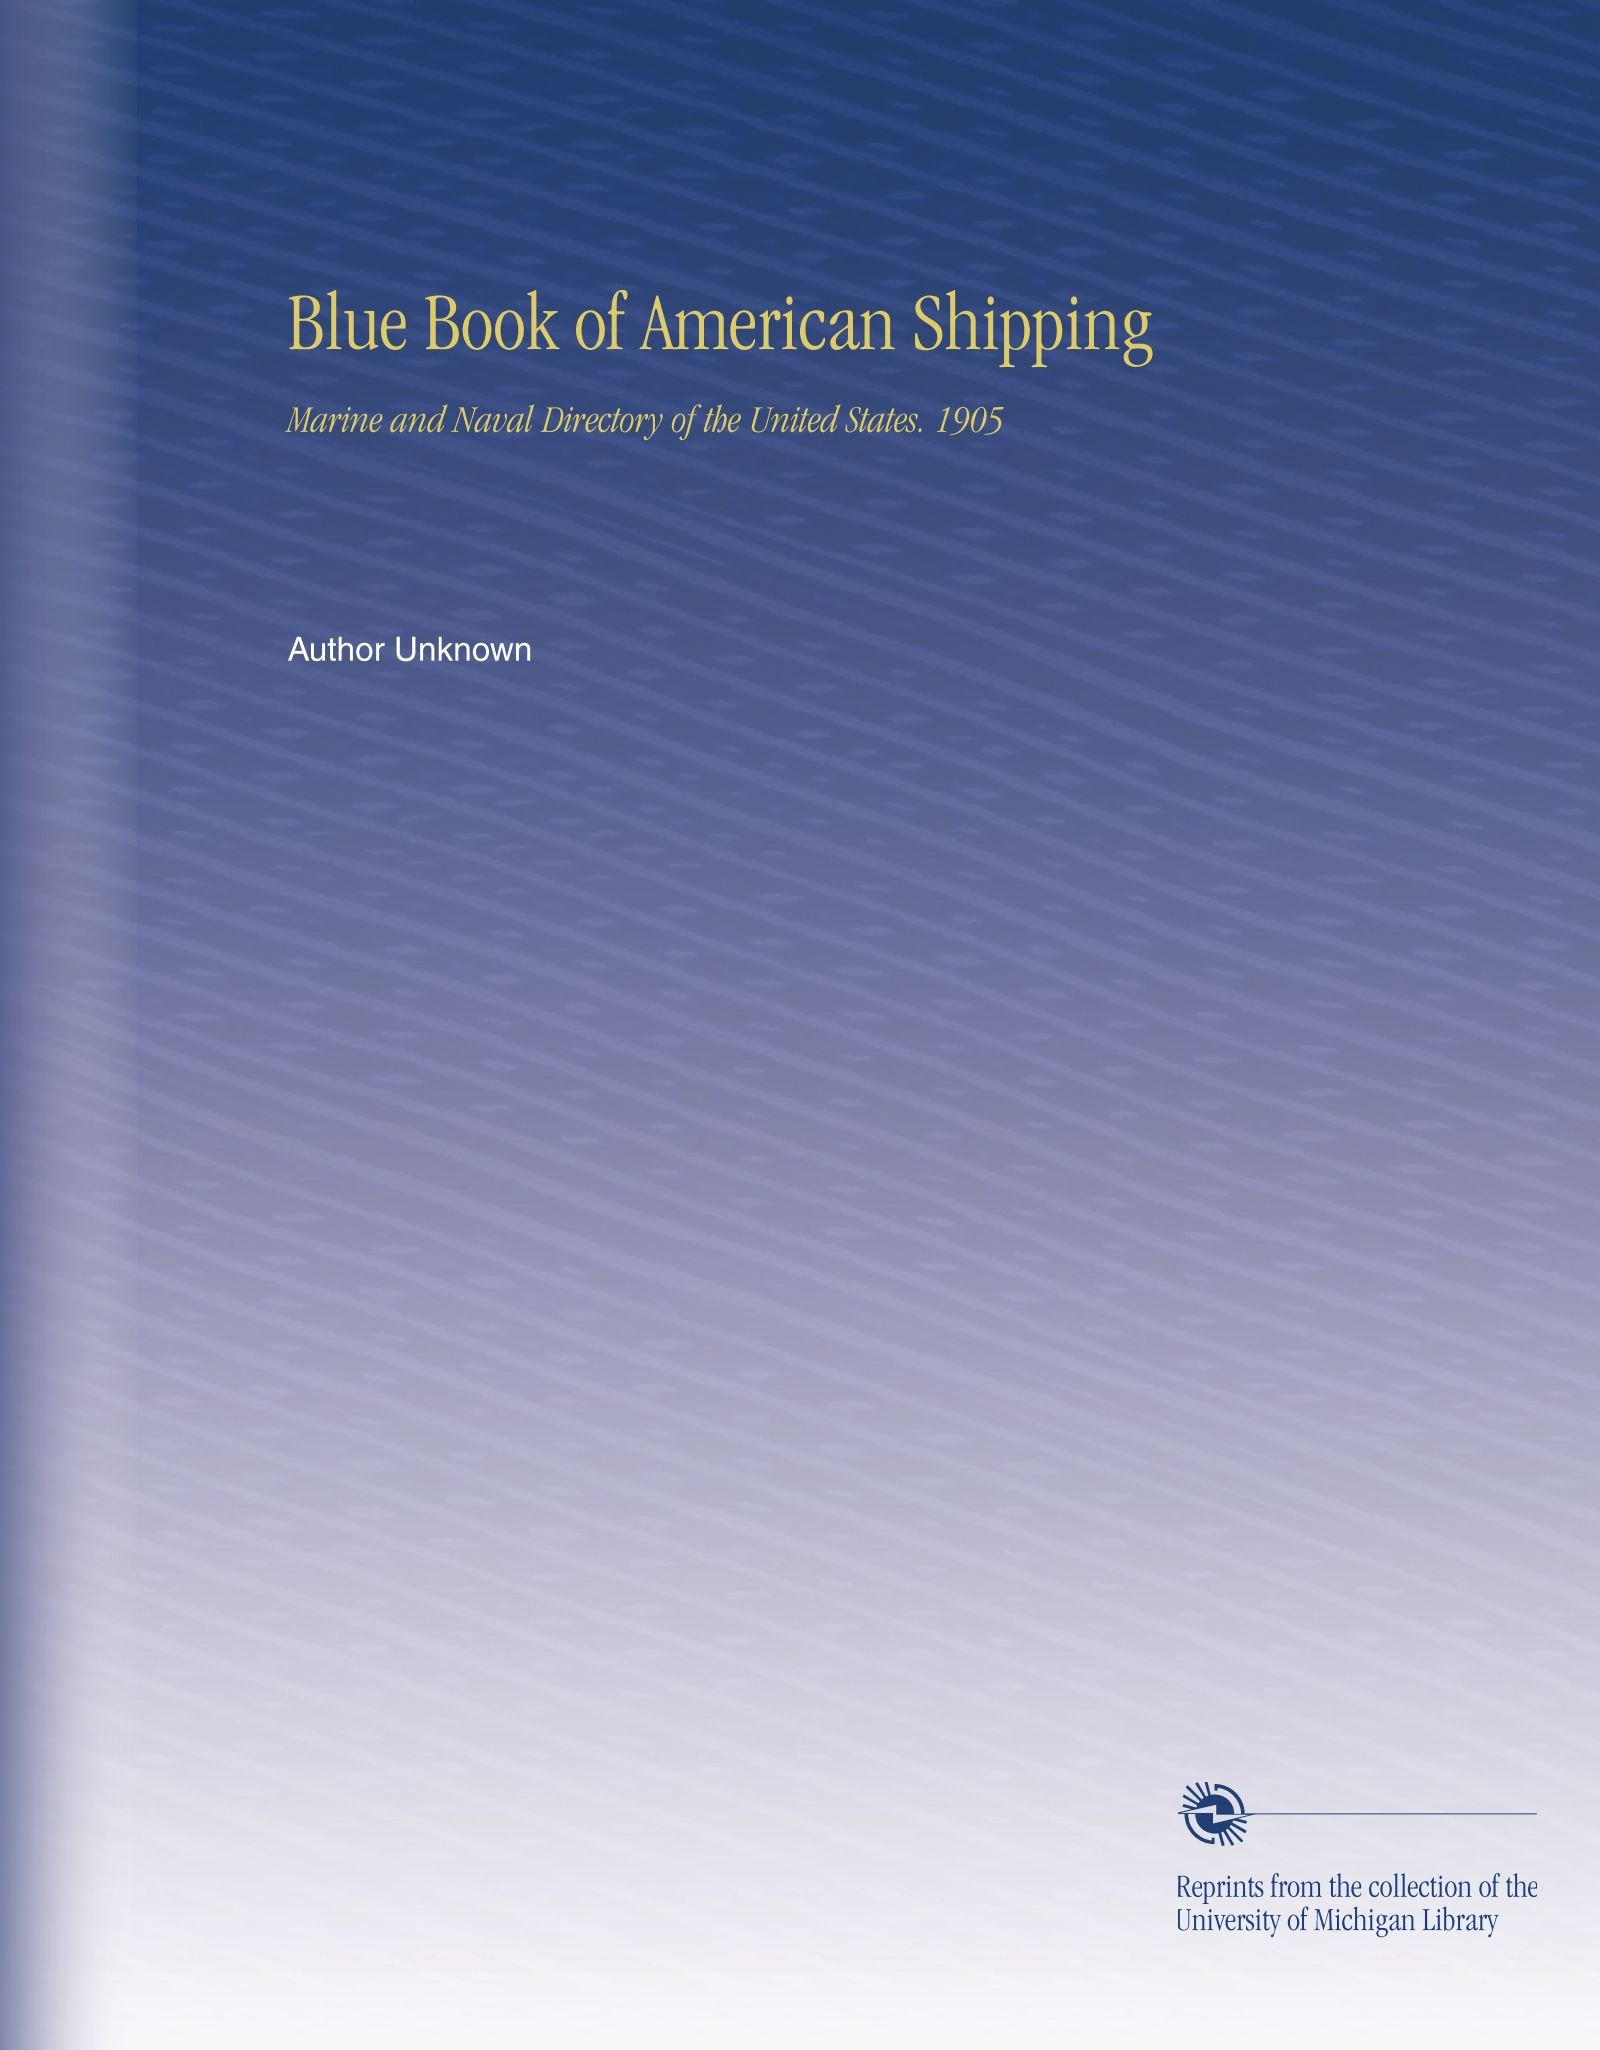 Download Blue Book of American Shipping: Marine and Naval Directory of the United States. 1905 PDF